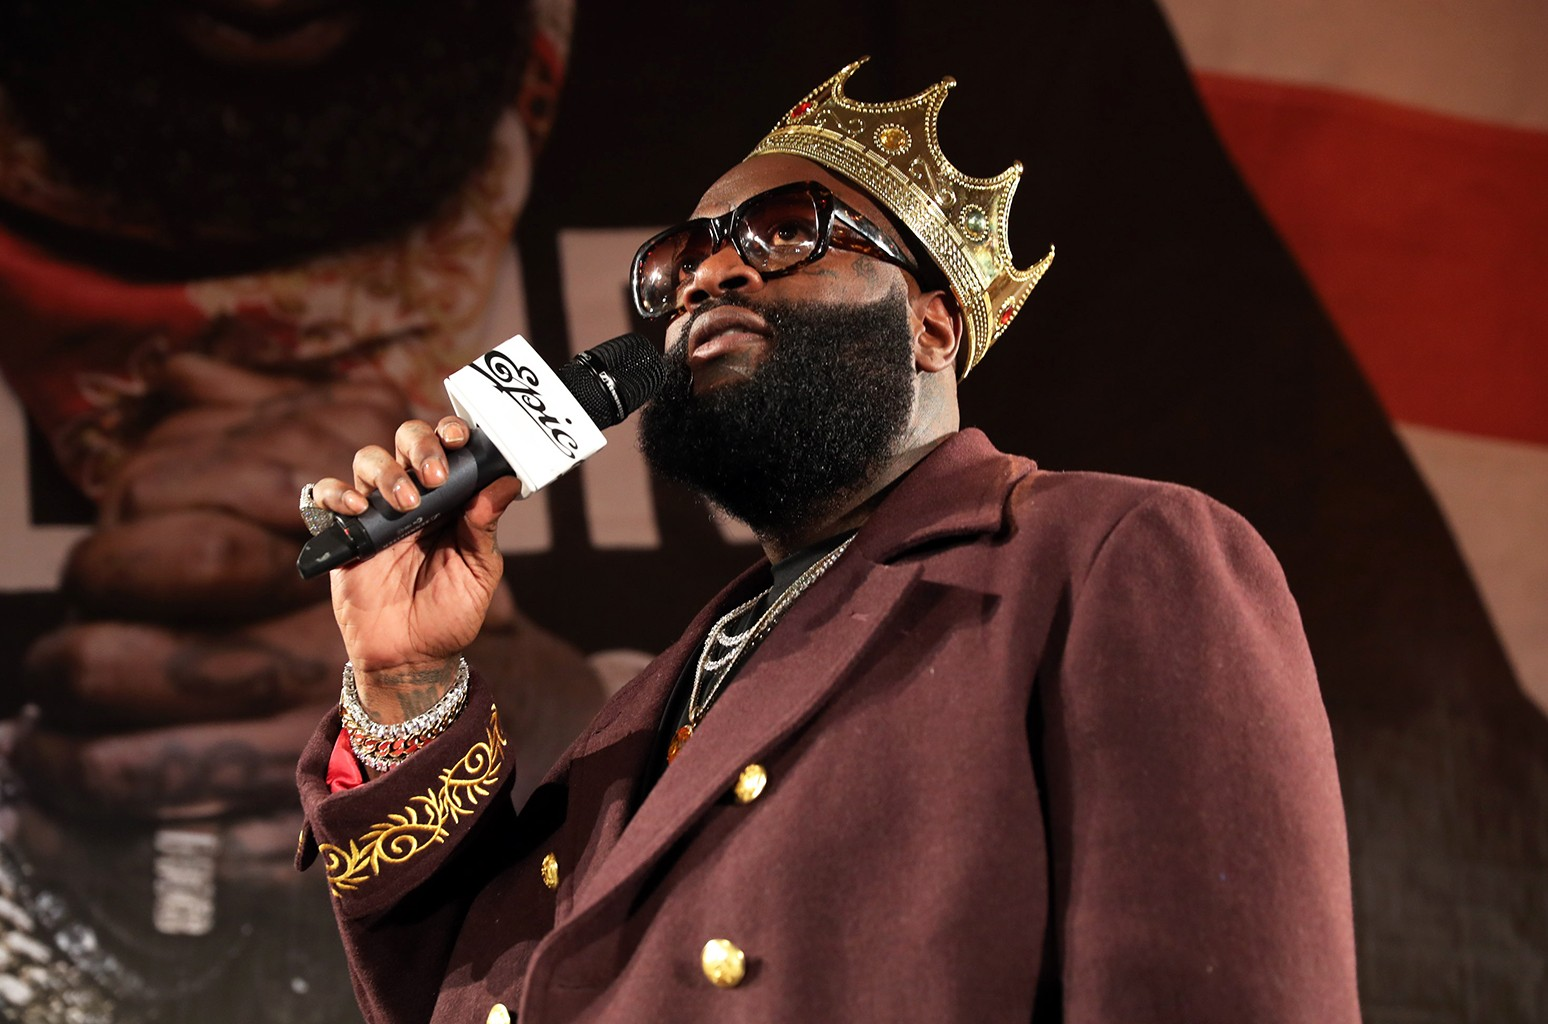 """Rick Ross hosts the Rick Ross and Mr. Brainwash """"Rather You Than Me"""" Album Listening Experience on March 8, 2017 in New York City.  (Photo by Johnny Nunez/WireImage)"""